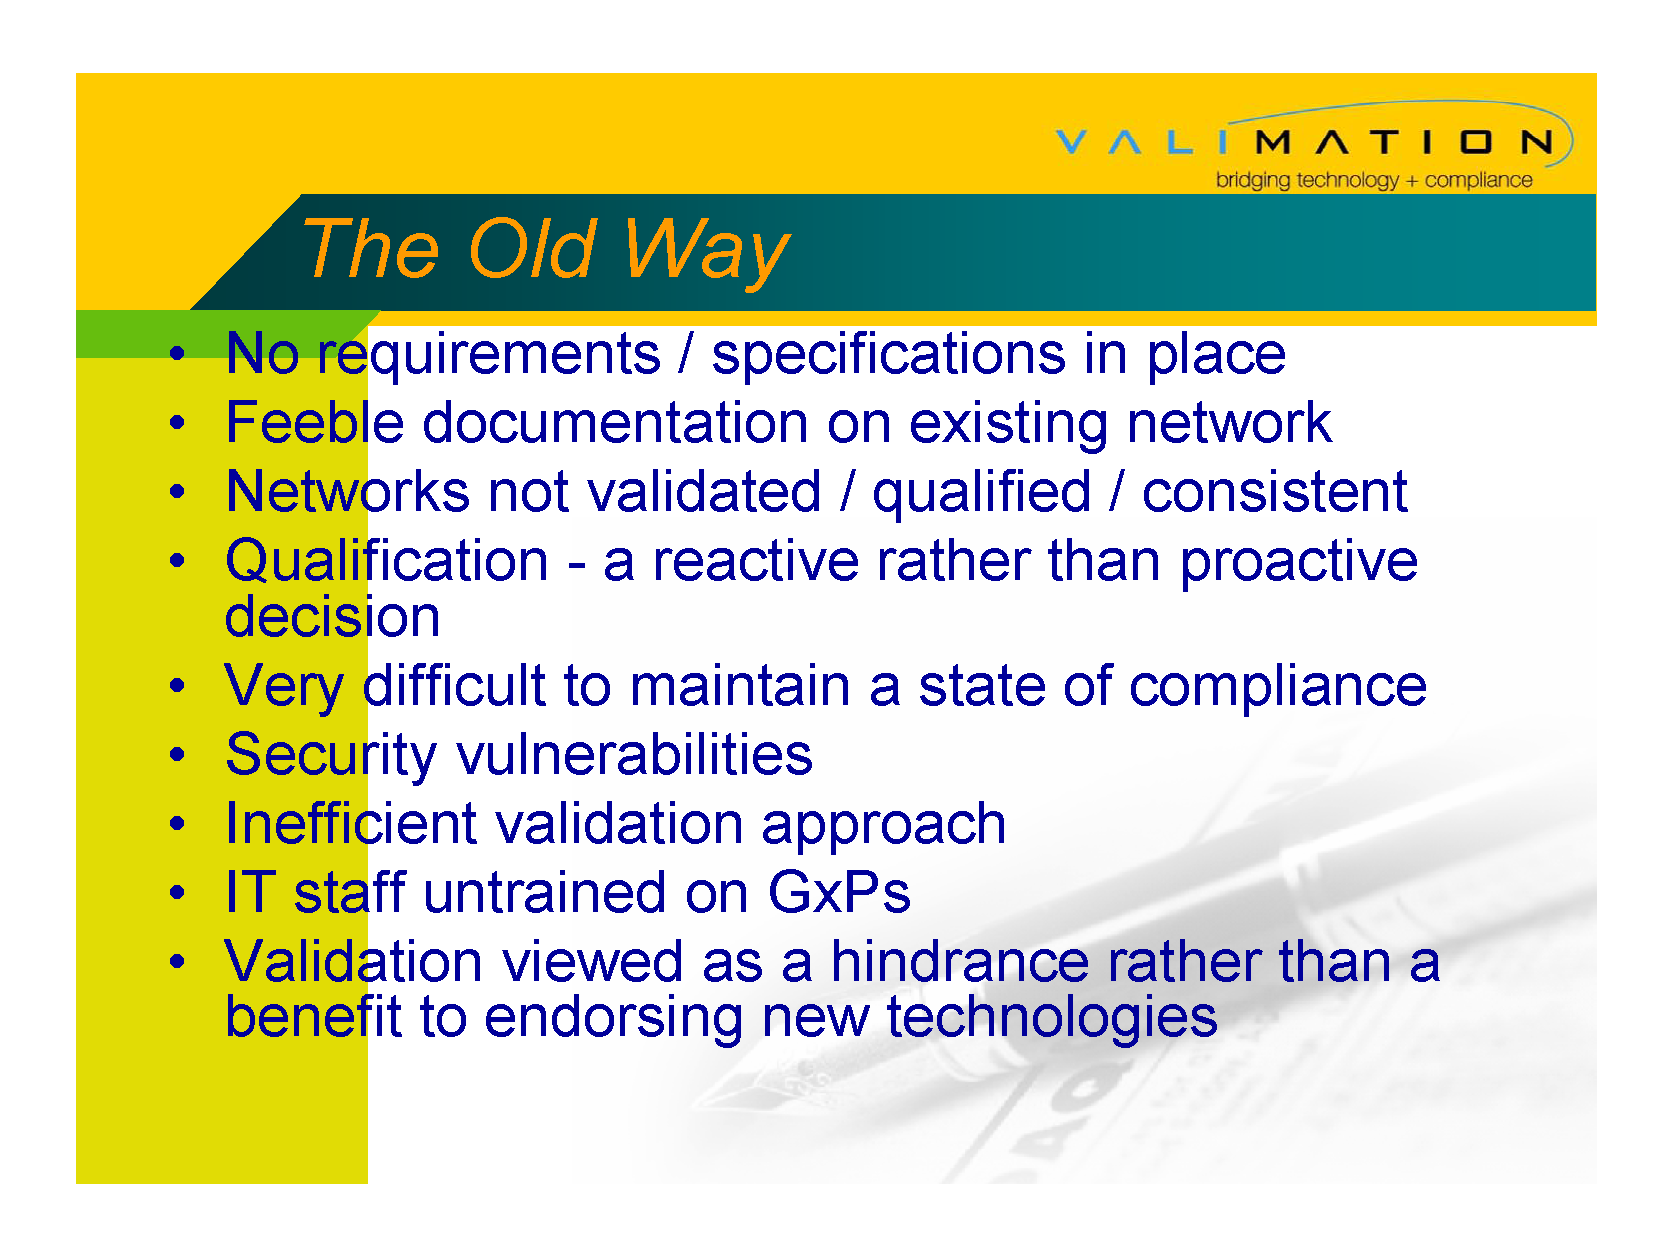 Network Qualification - Accretive Model By ValiMation_Page_05.png